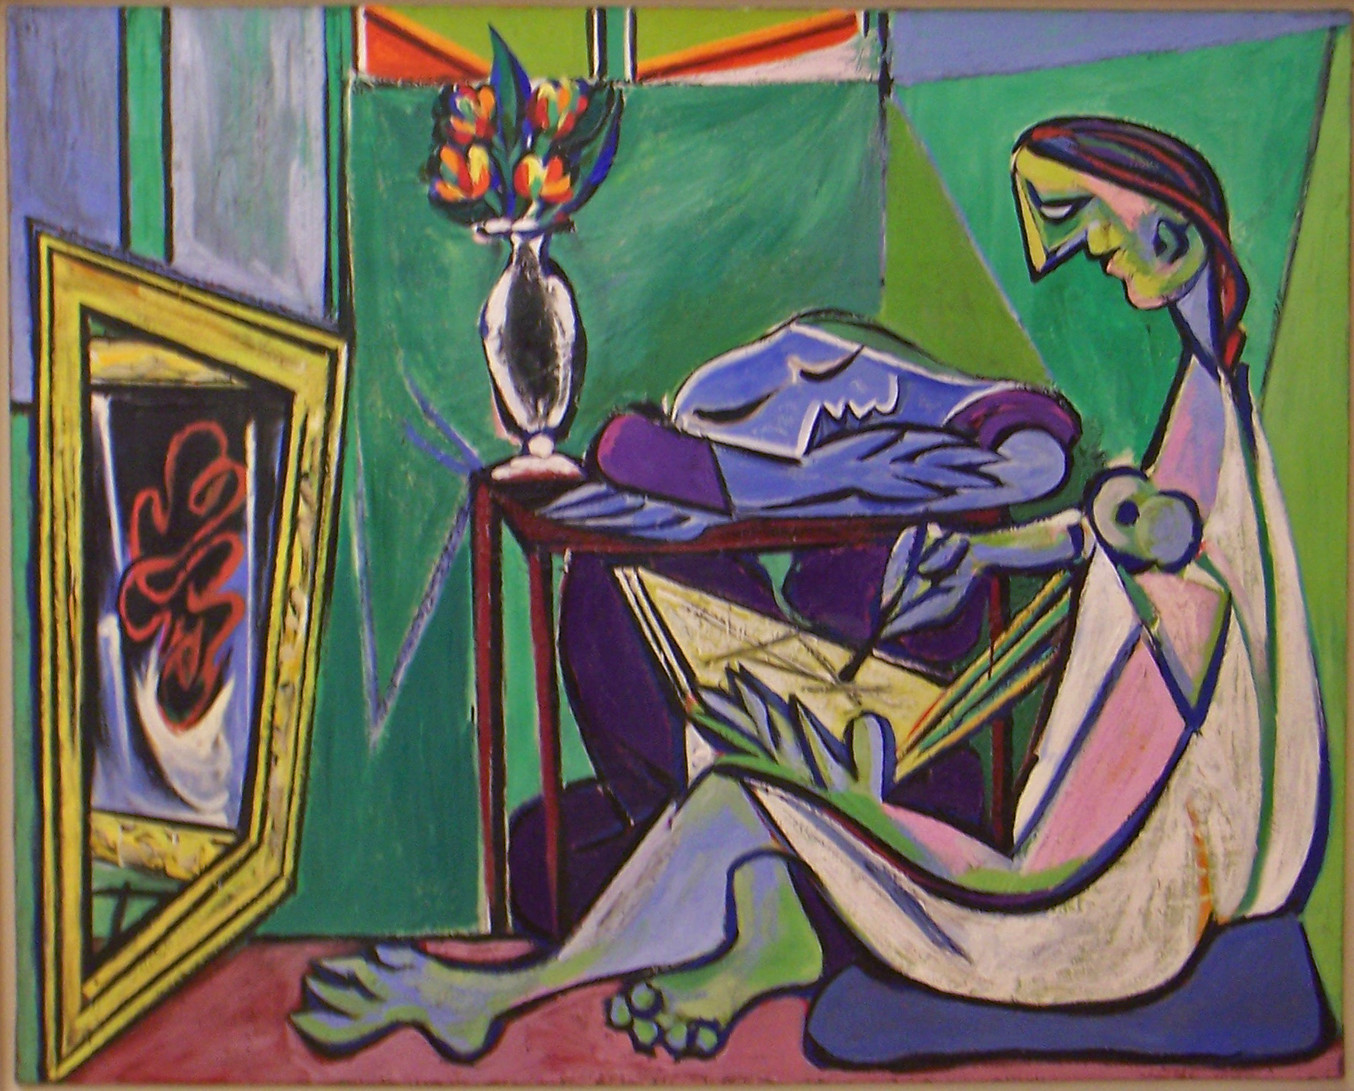 Picasso die Muse